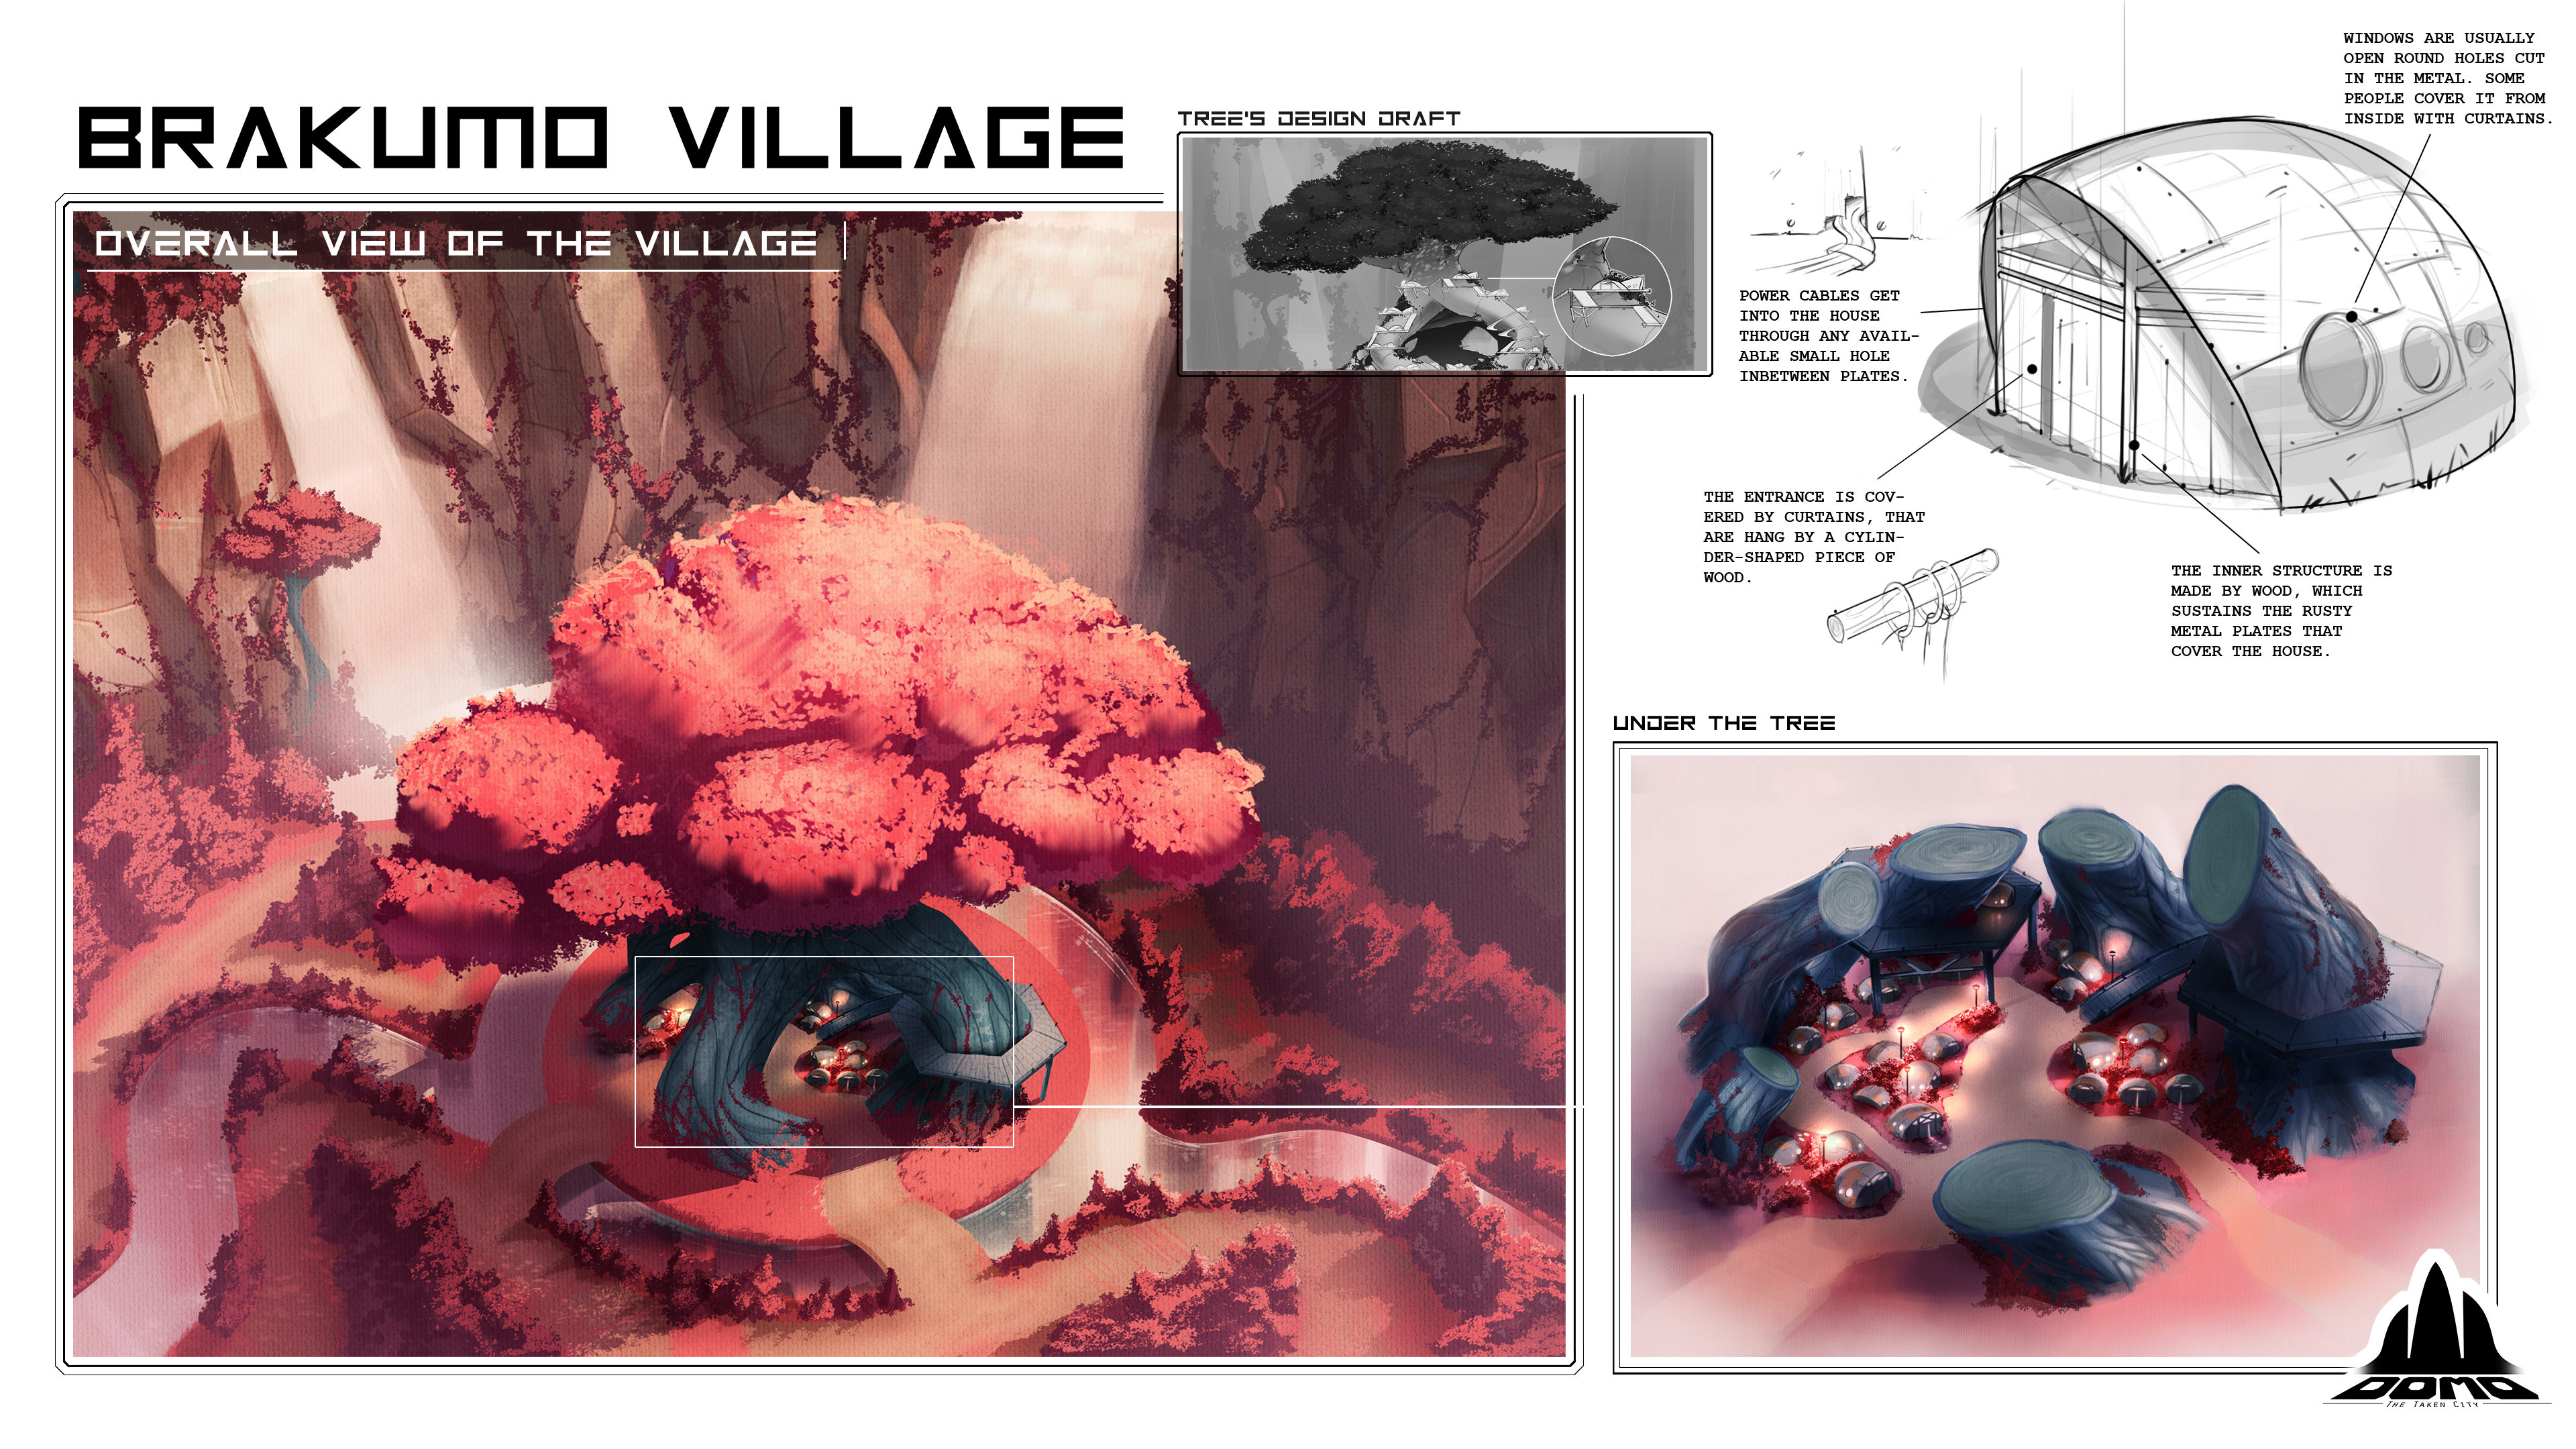 Brakumo Village Concept Art Sheet